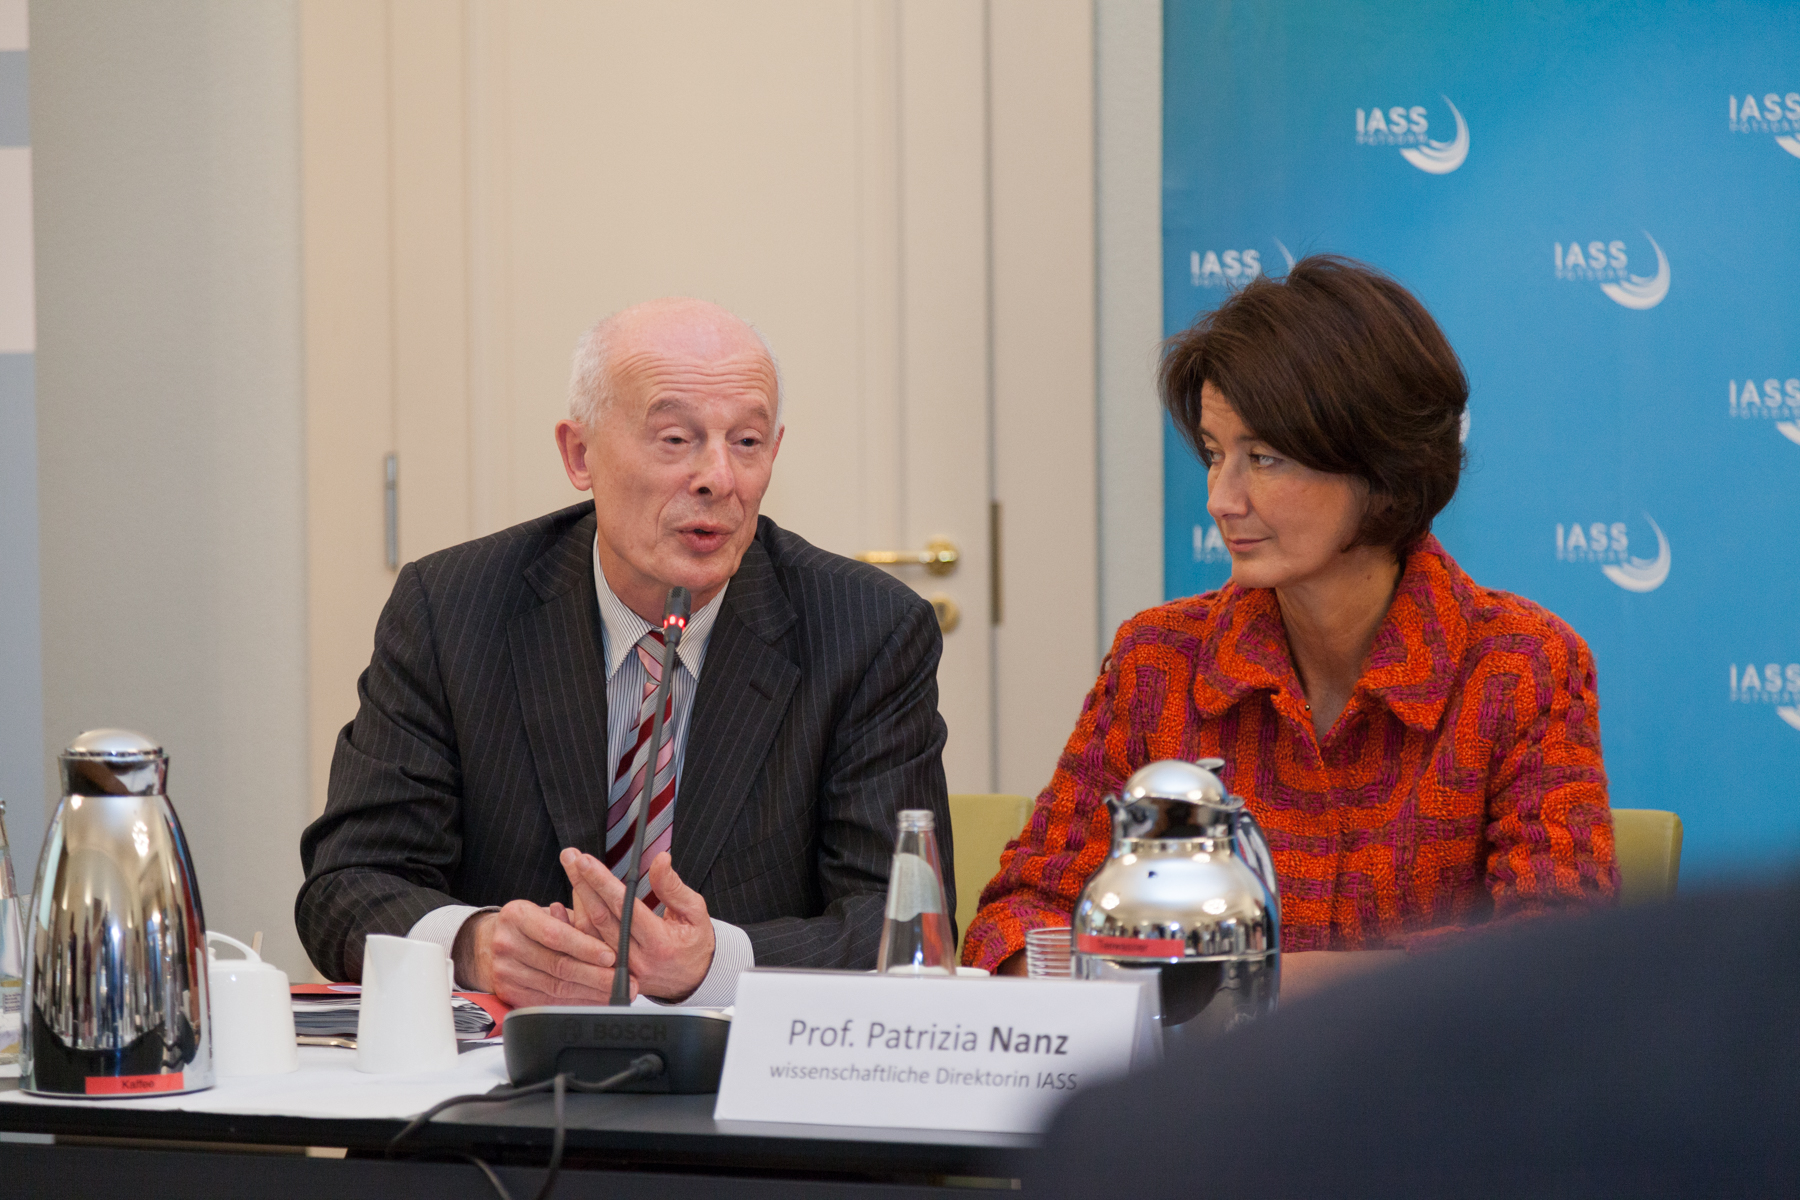 PIK Director Hans Joachim Schellnhuber and IASS Director Patrizia Nanz outline their proposal for a Future Commission for Brandenburg